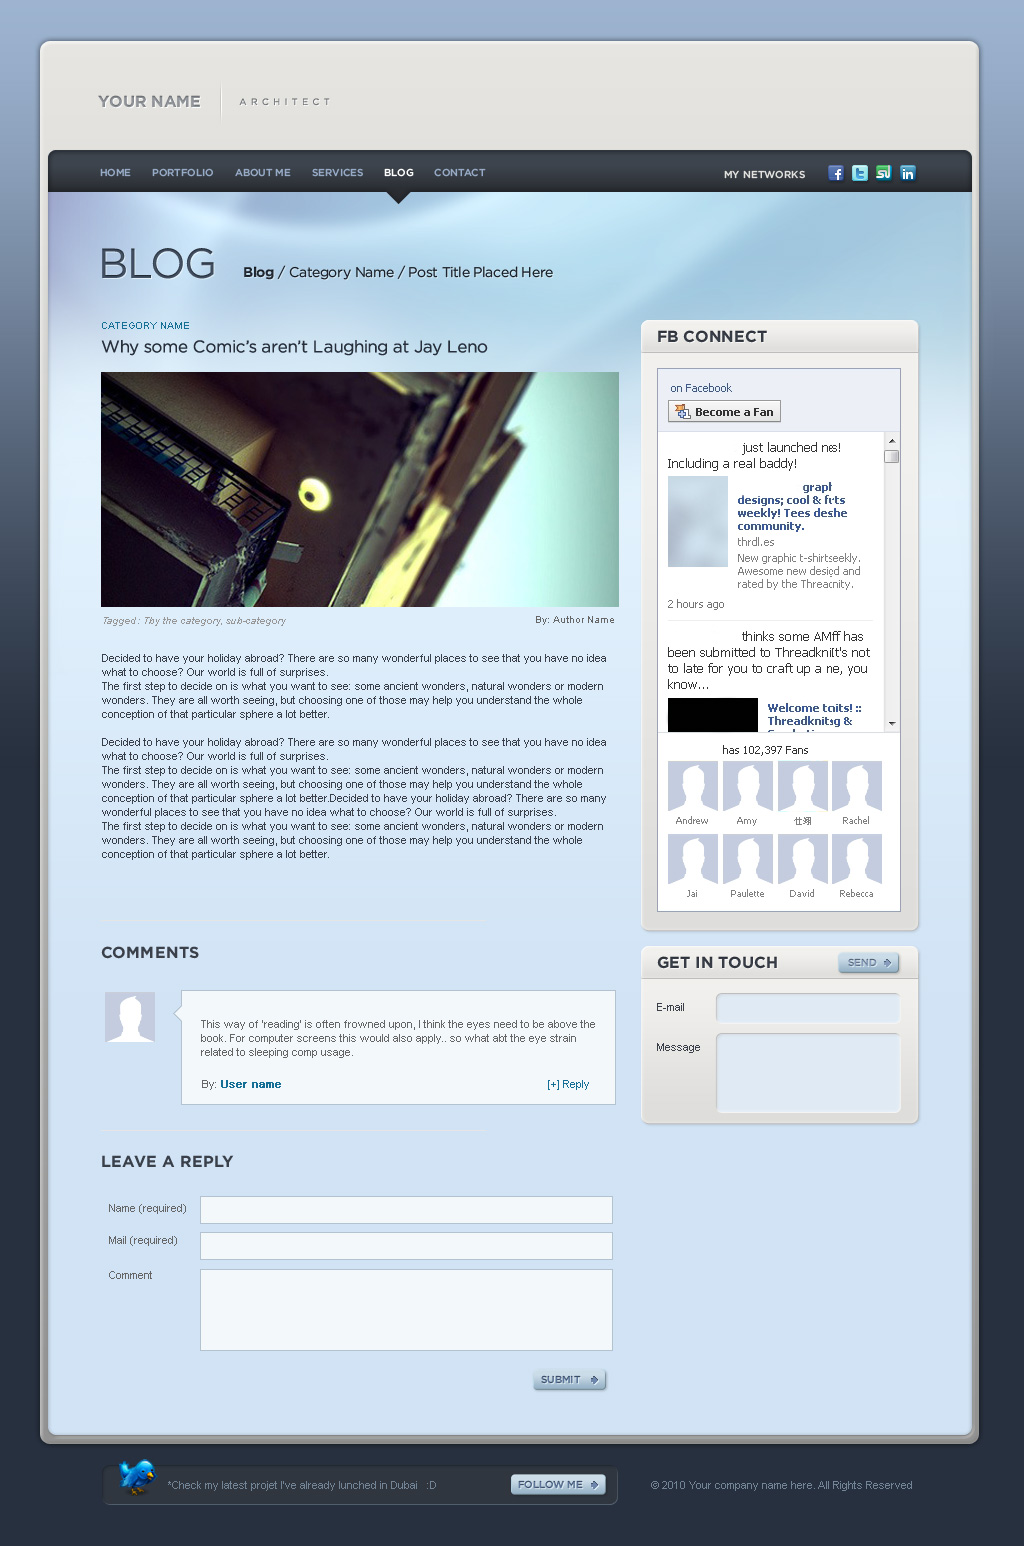 Folio web 2.0 style / HTML VERSION /